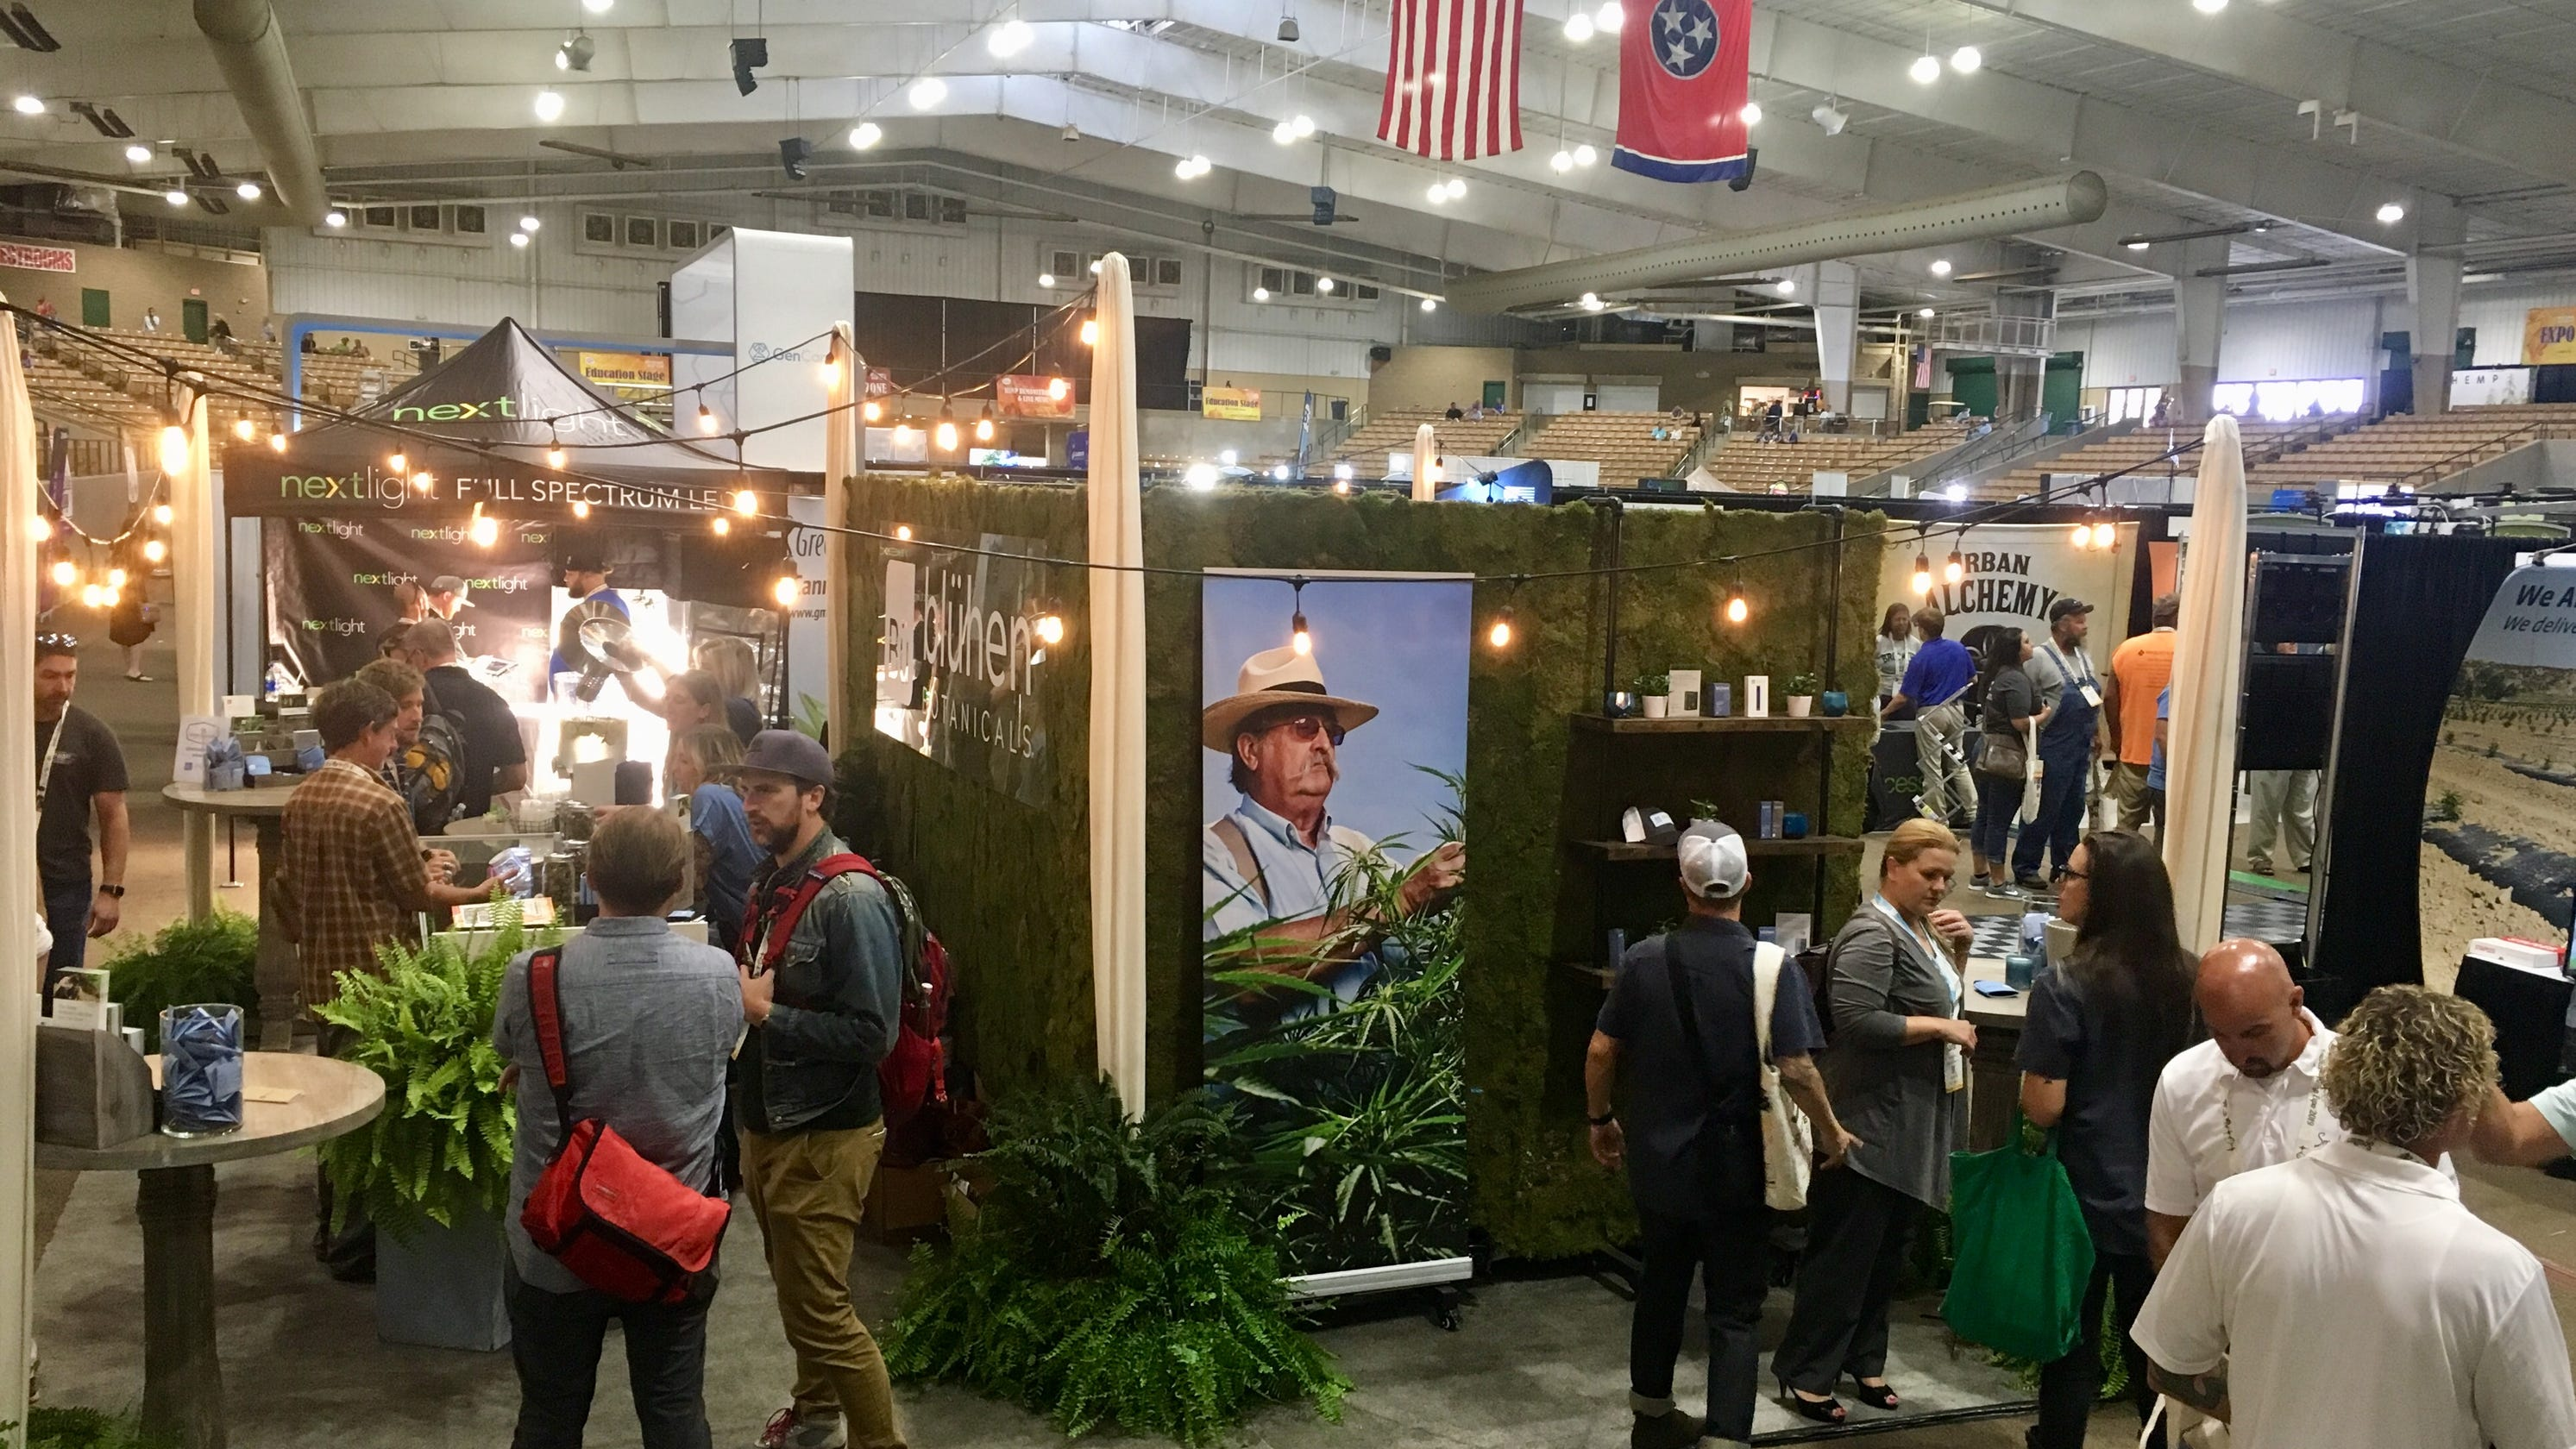 Franklin hosts second Southern Hemp Expo - The Tennessean